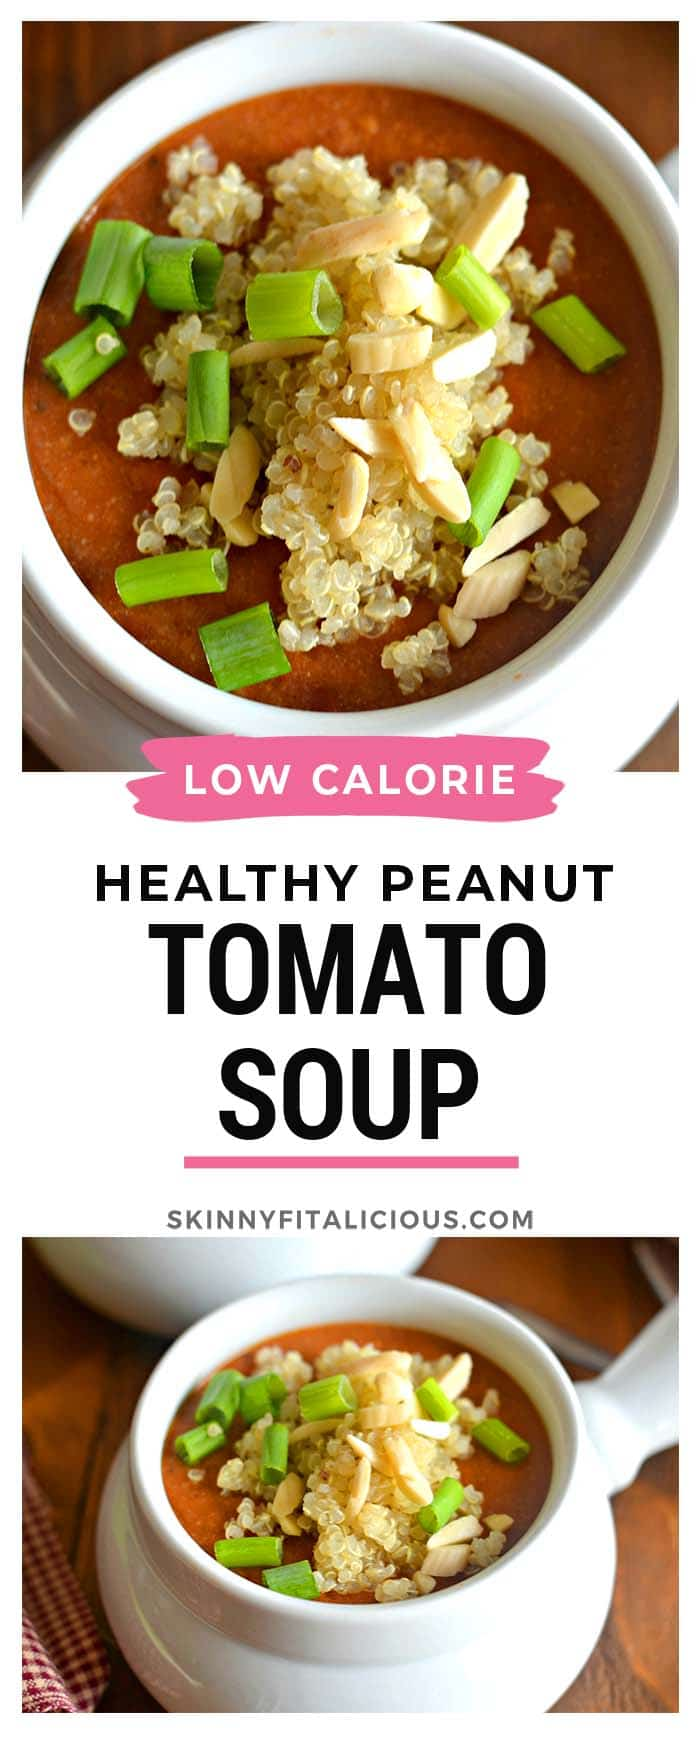 Creamy and comforting, thisvegan Tomato Peanut Butter Quinoa Soup comes together with a simple combination of peanut butter, tomatoes and tomato paste for aneasy weeknight meal. This is not your mama's tomato soup!